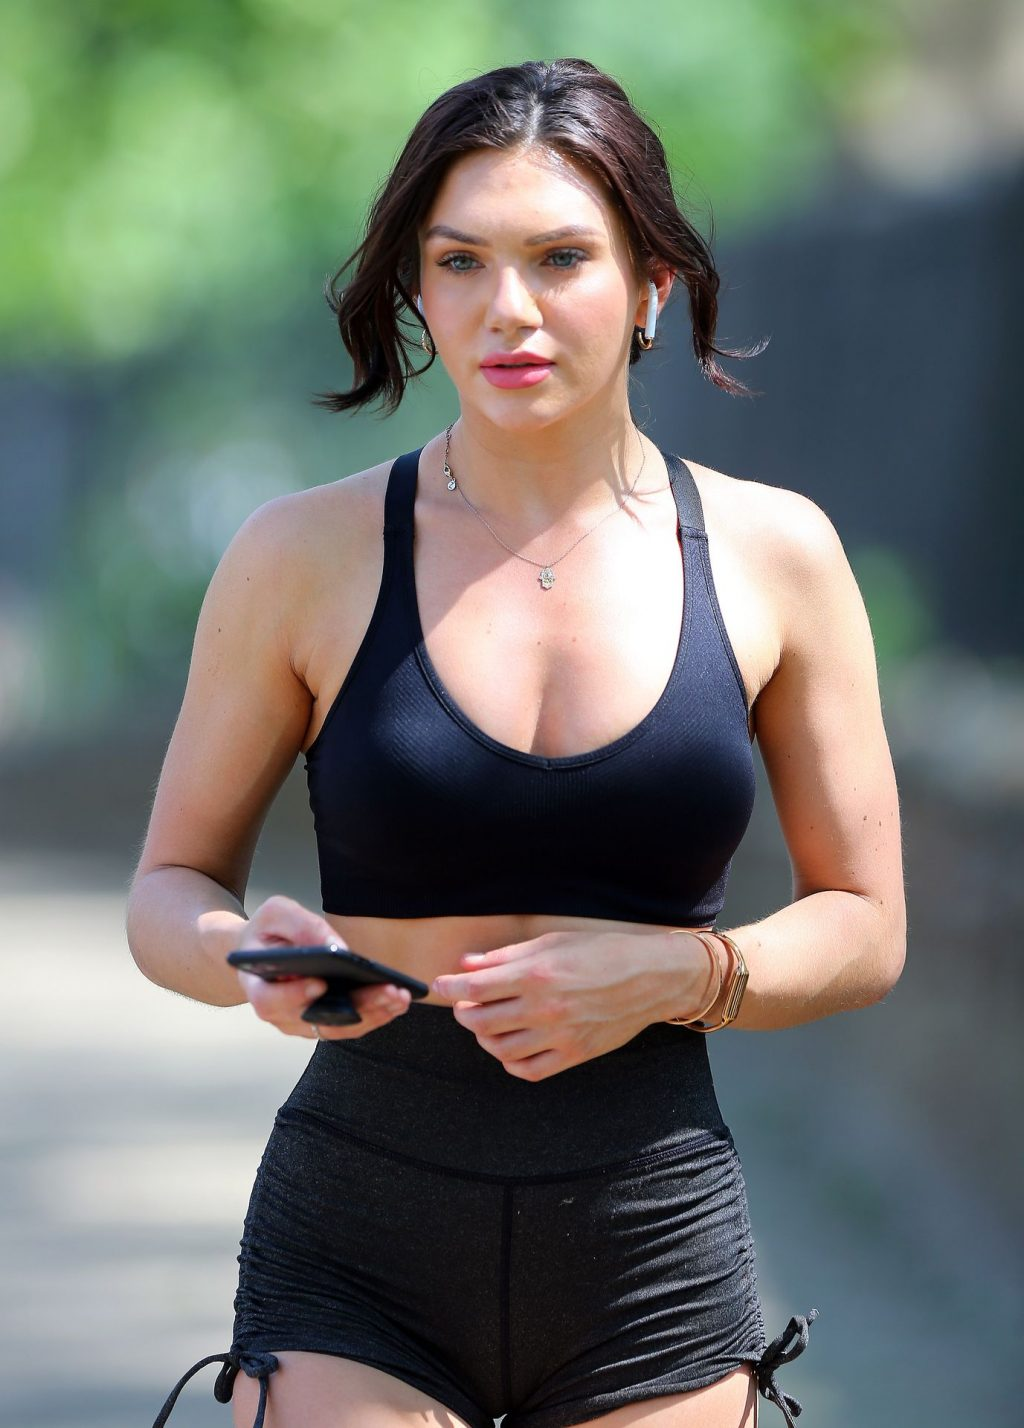 Alexandra Cane Shows Off Her Fit Body In London (14 Photos)